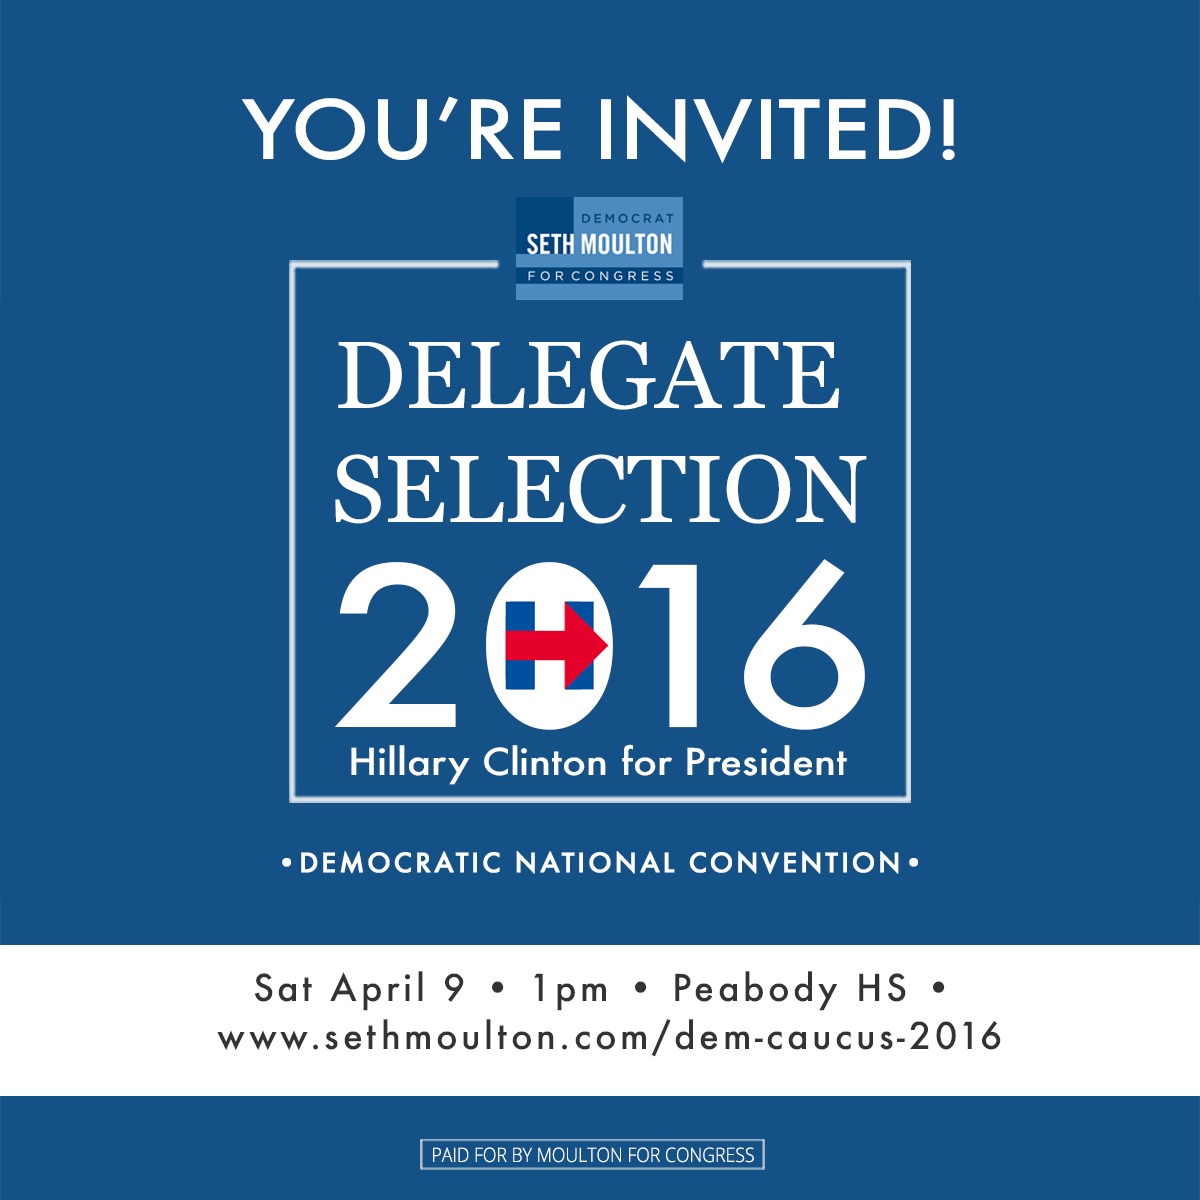 HRC_Canvas_April_9_invite.png